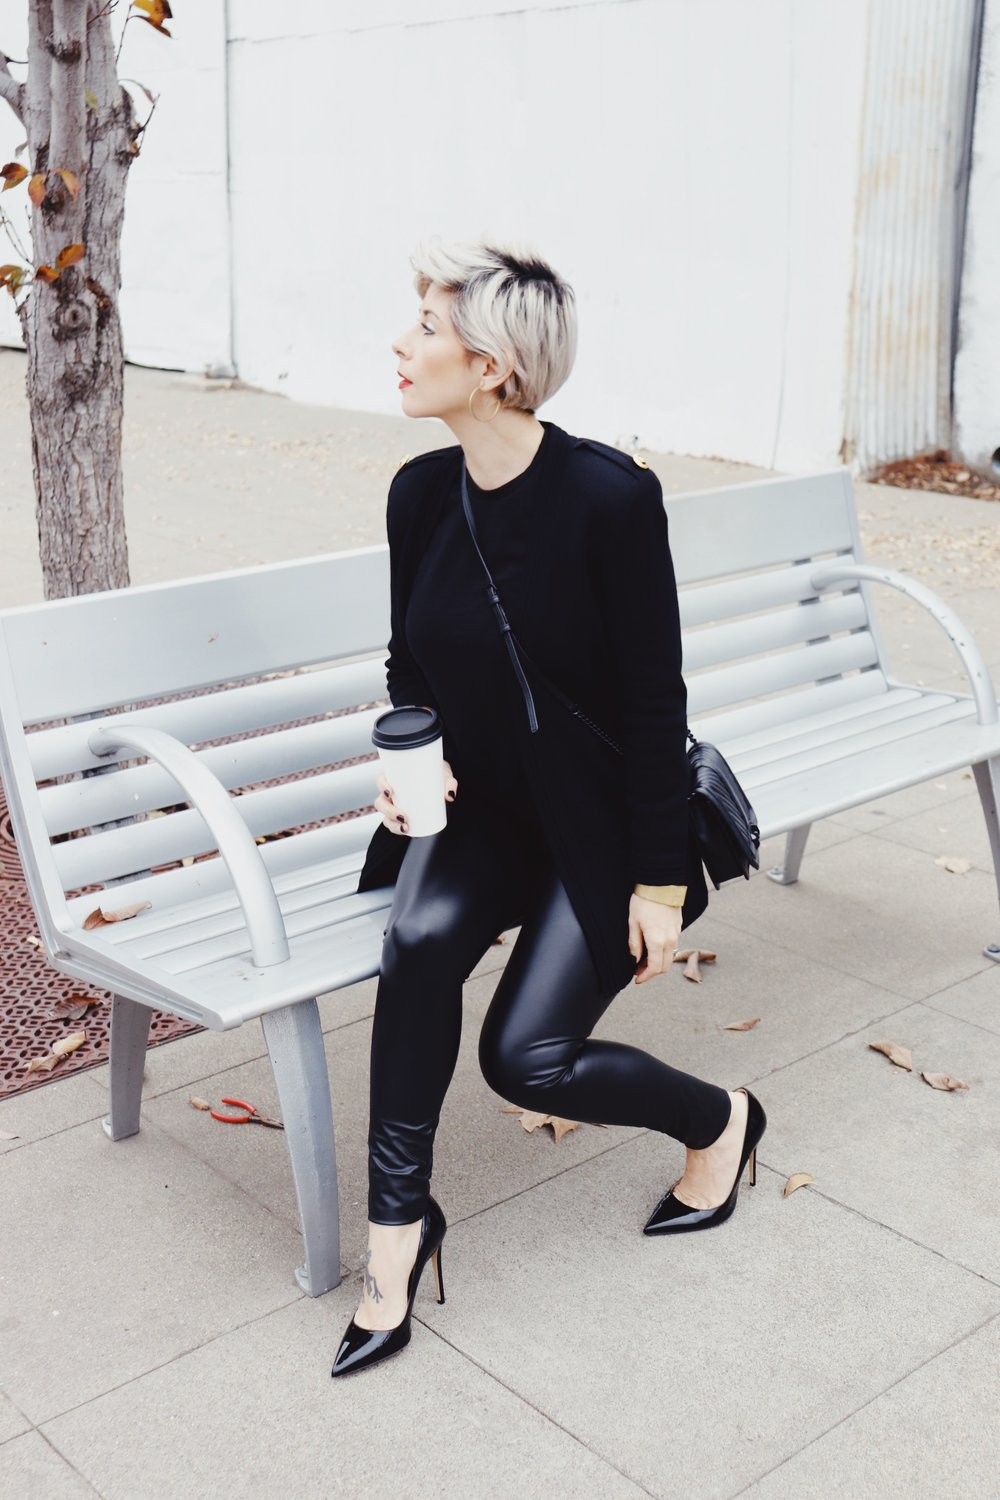 Holidayoutfit2018allblackchicoutfitlibier_39bh.JPG